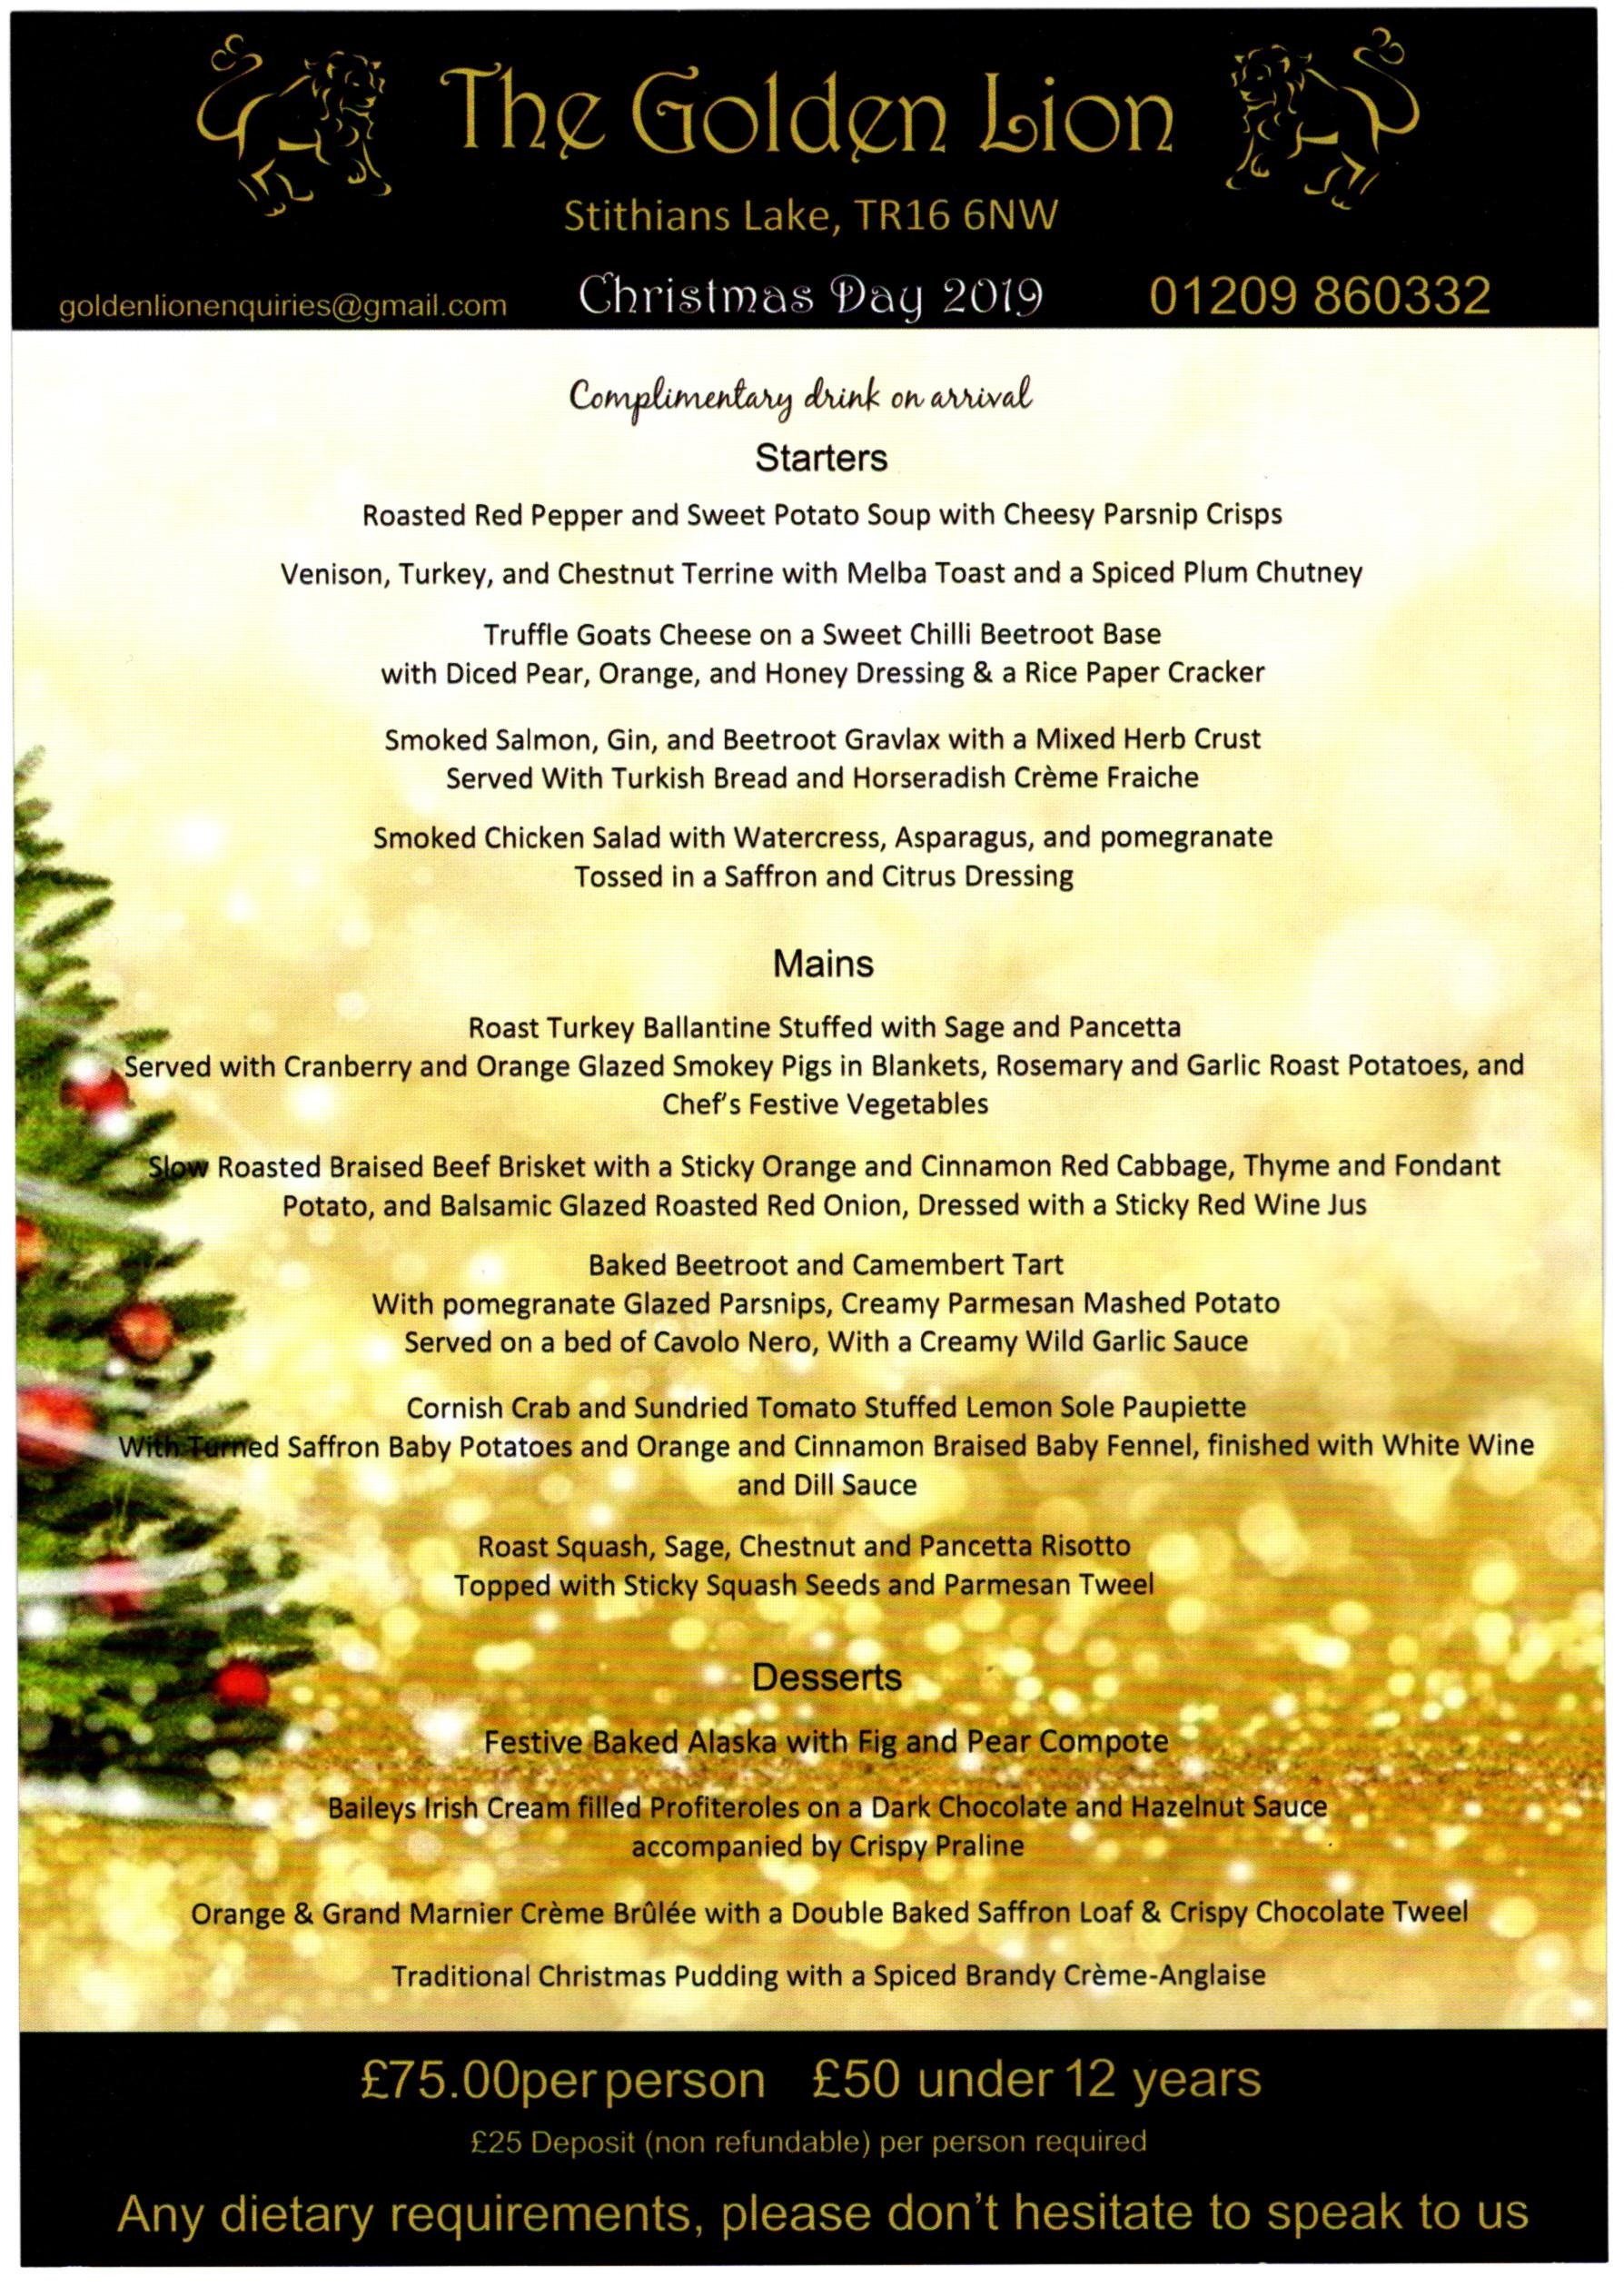 Christmas Day 2019.Christmas Day 2019 The Golden Lion Lakeside Redruth